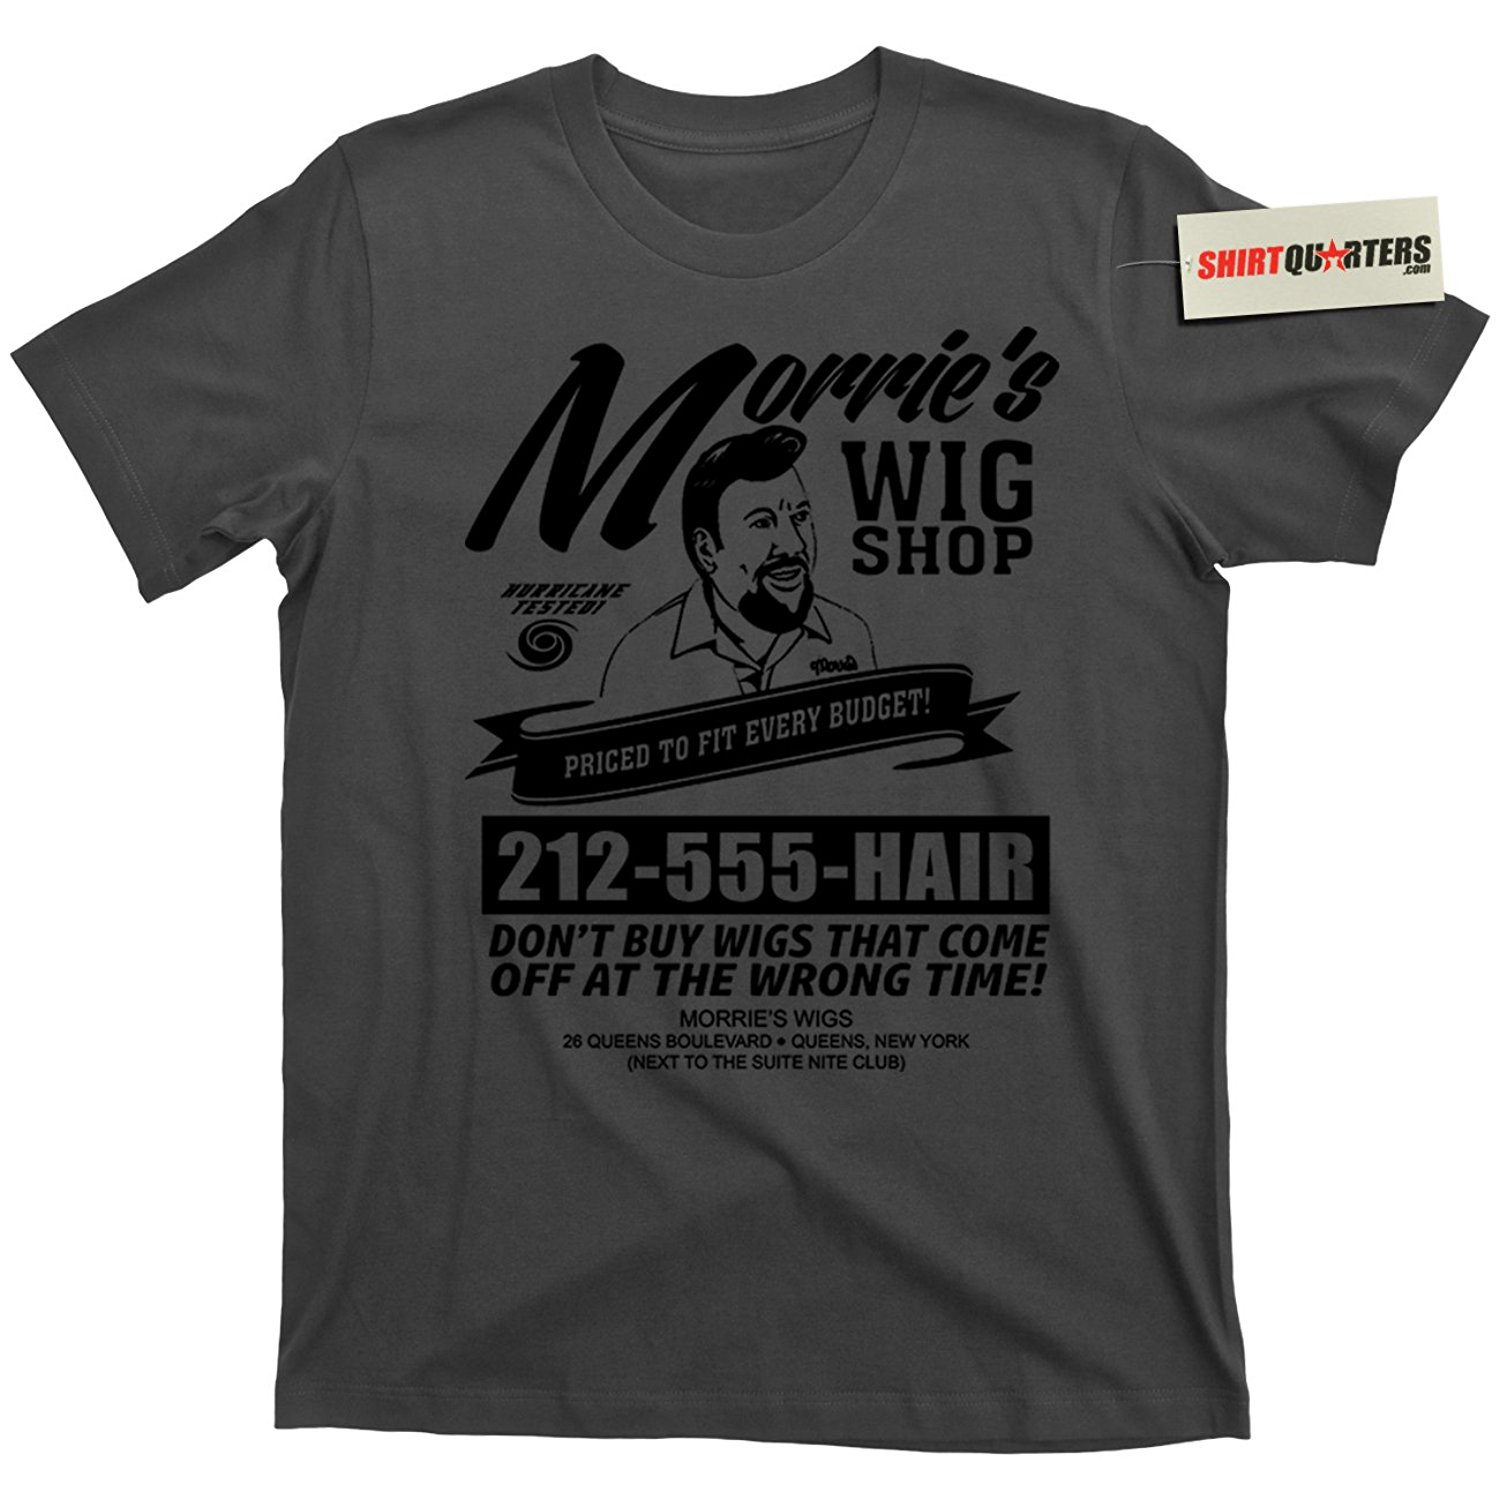 2019 New Summer High Quality Tee Shirt Morrie's MORRIES Wigs Wig Shop Goodfellas Movie Mobster Mafia T Shirt Cool T-shirt image